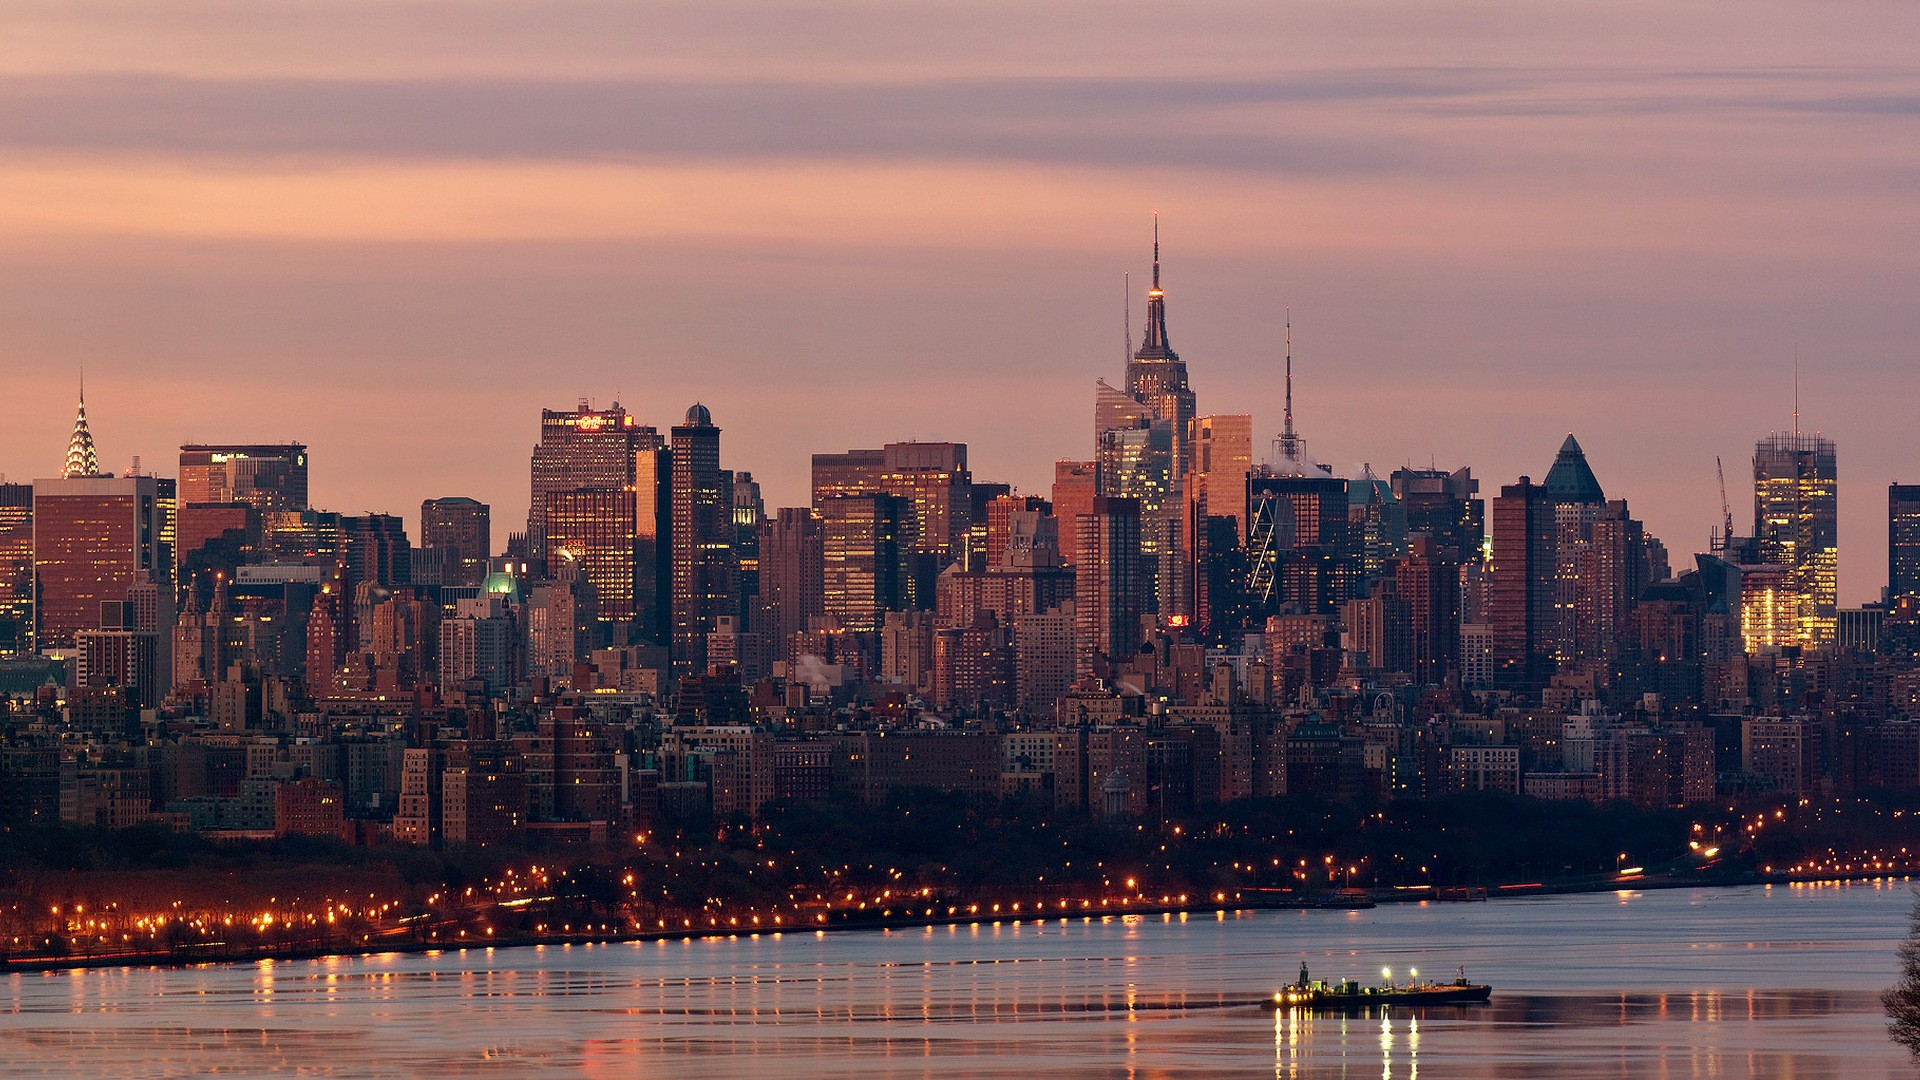 new york city skyline wallpapers high quality download free. Black Bedroom Furniture Sets. Home Design Ideas